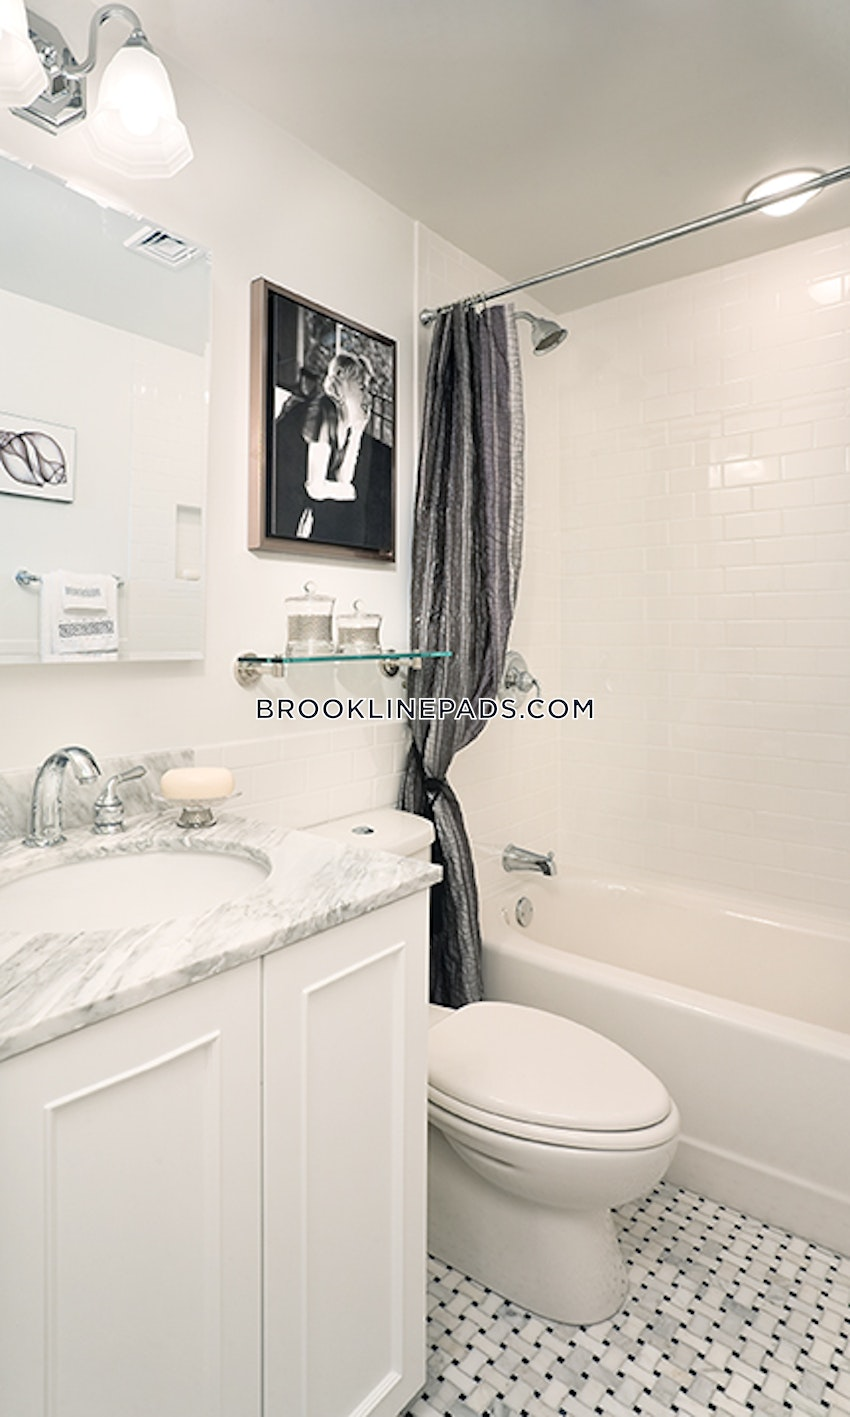 BROOKLINE- LONGWOOD AREA - 1 Bed, 1 Bath - Image 19